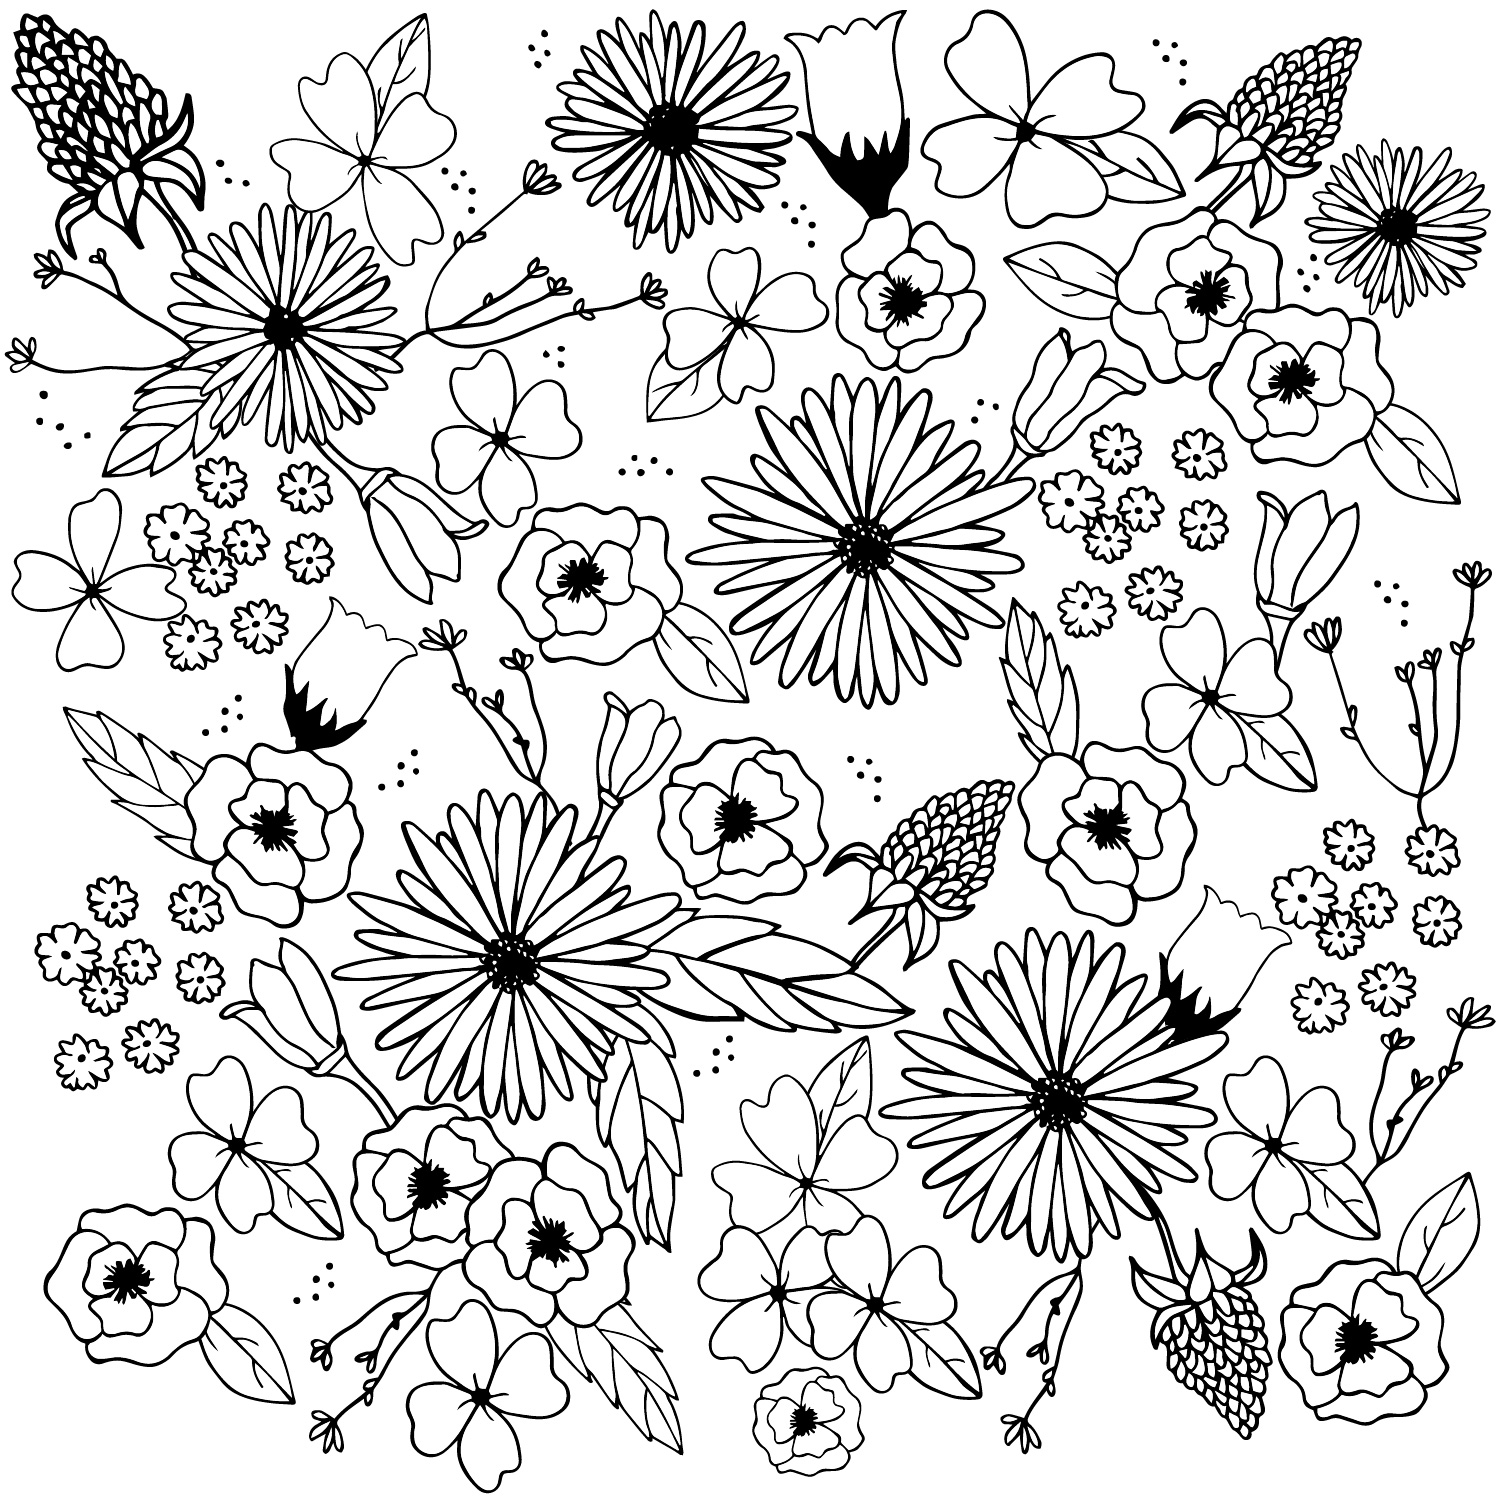 floral whimsy | surface design by Allie Tate